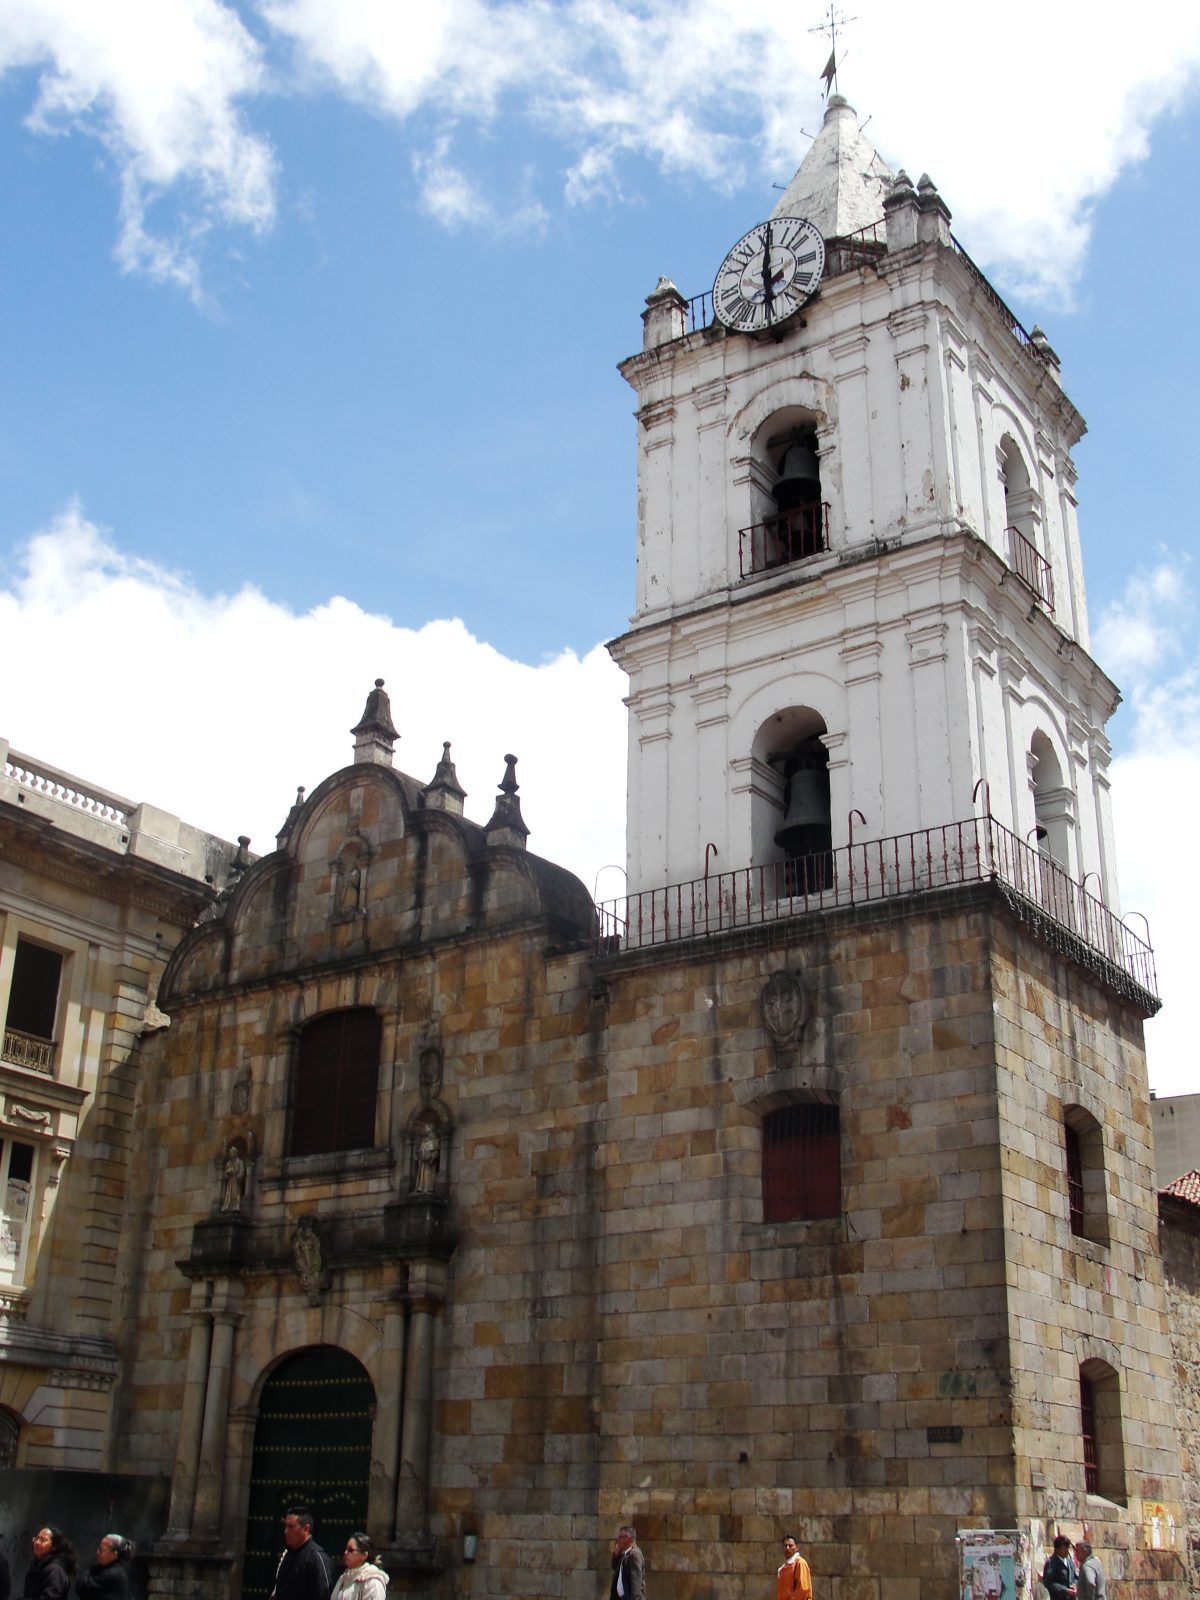 Built in the second half of the 16th century, Iglesia de San Francisco is Bogota's oldest church.